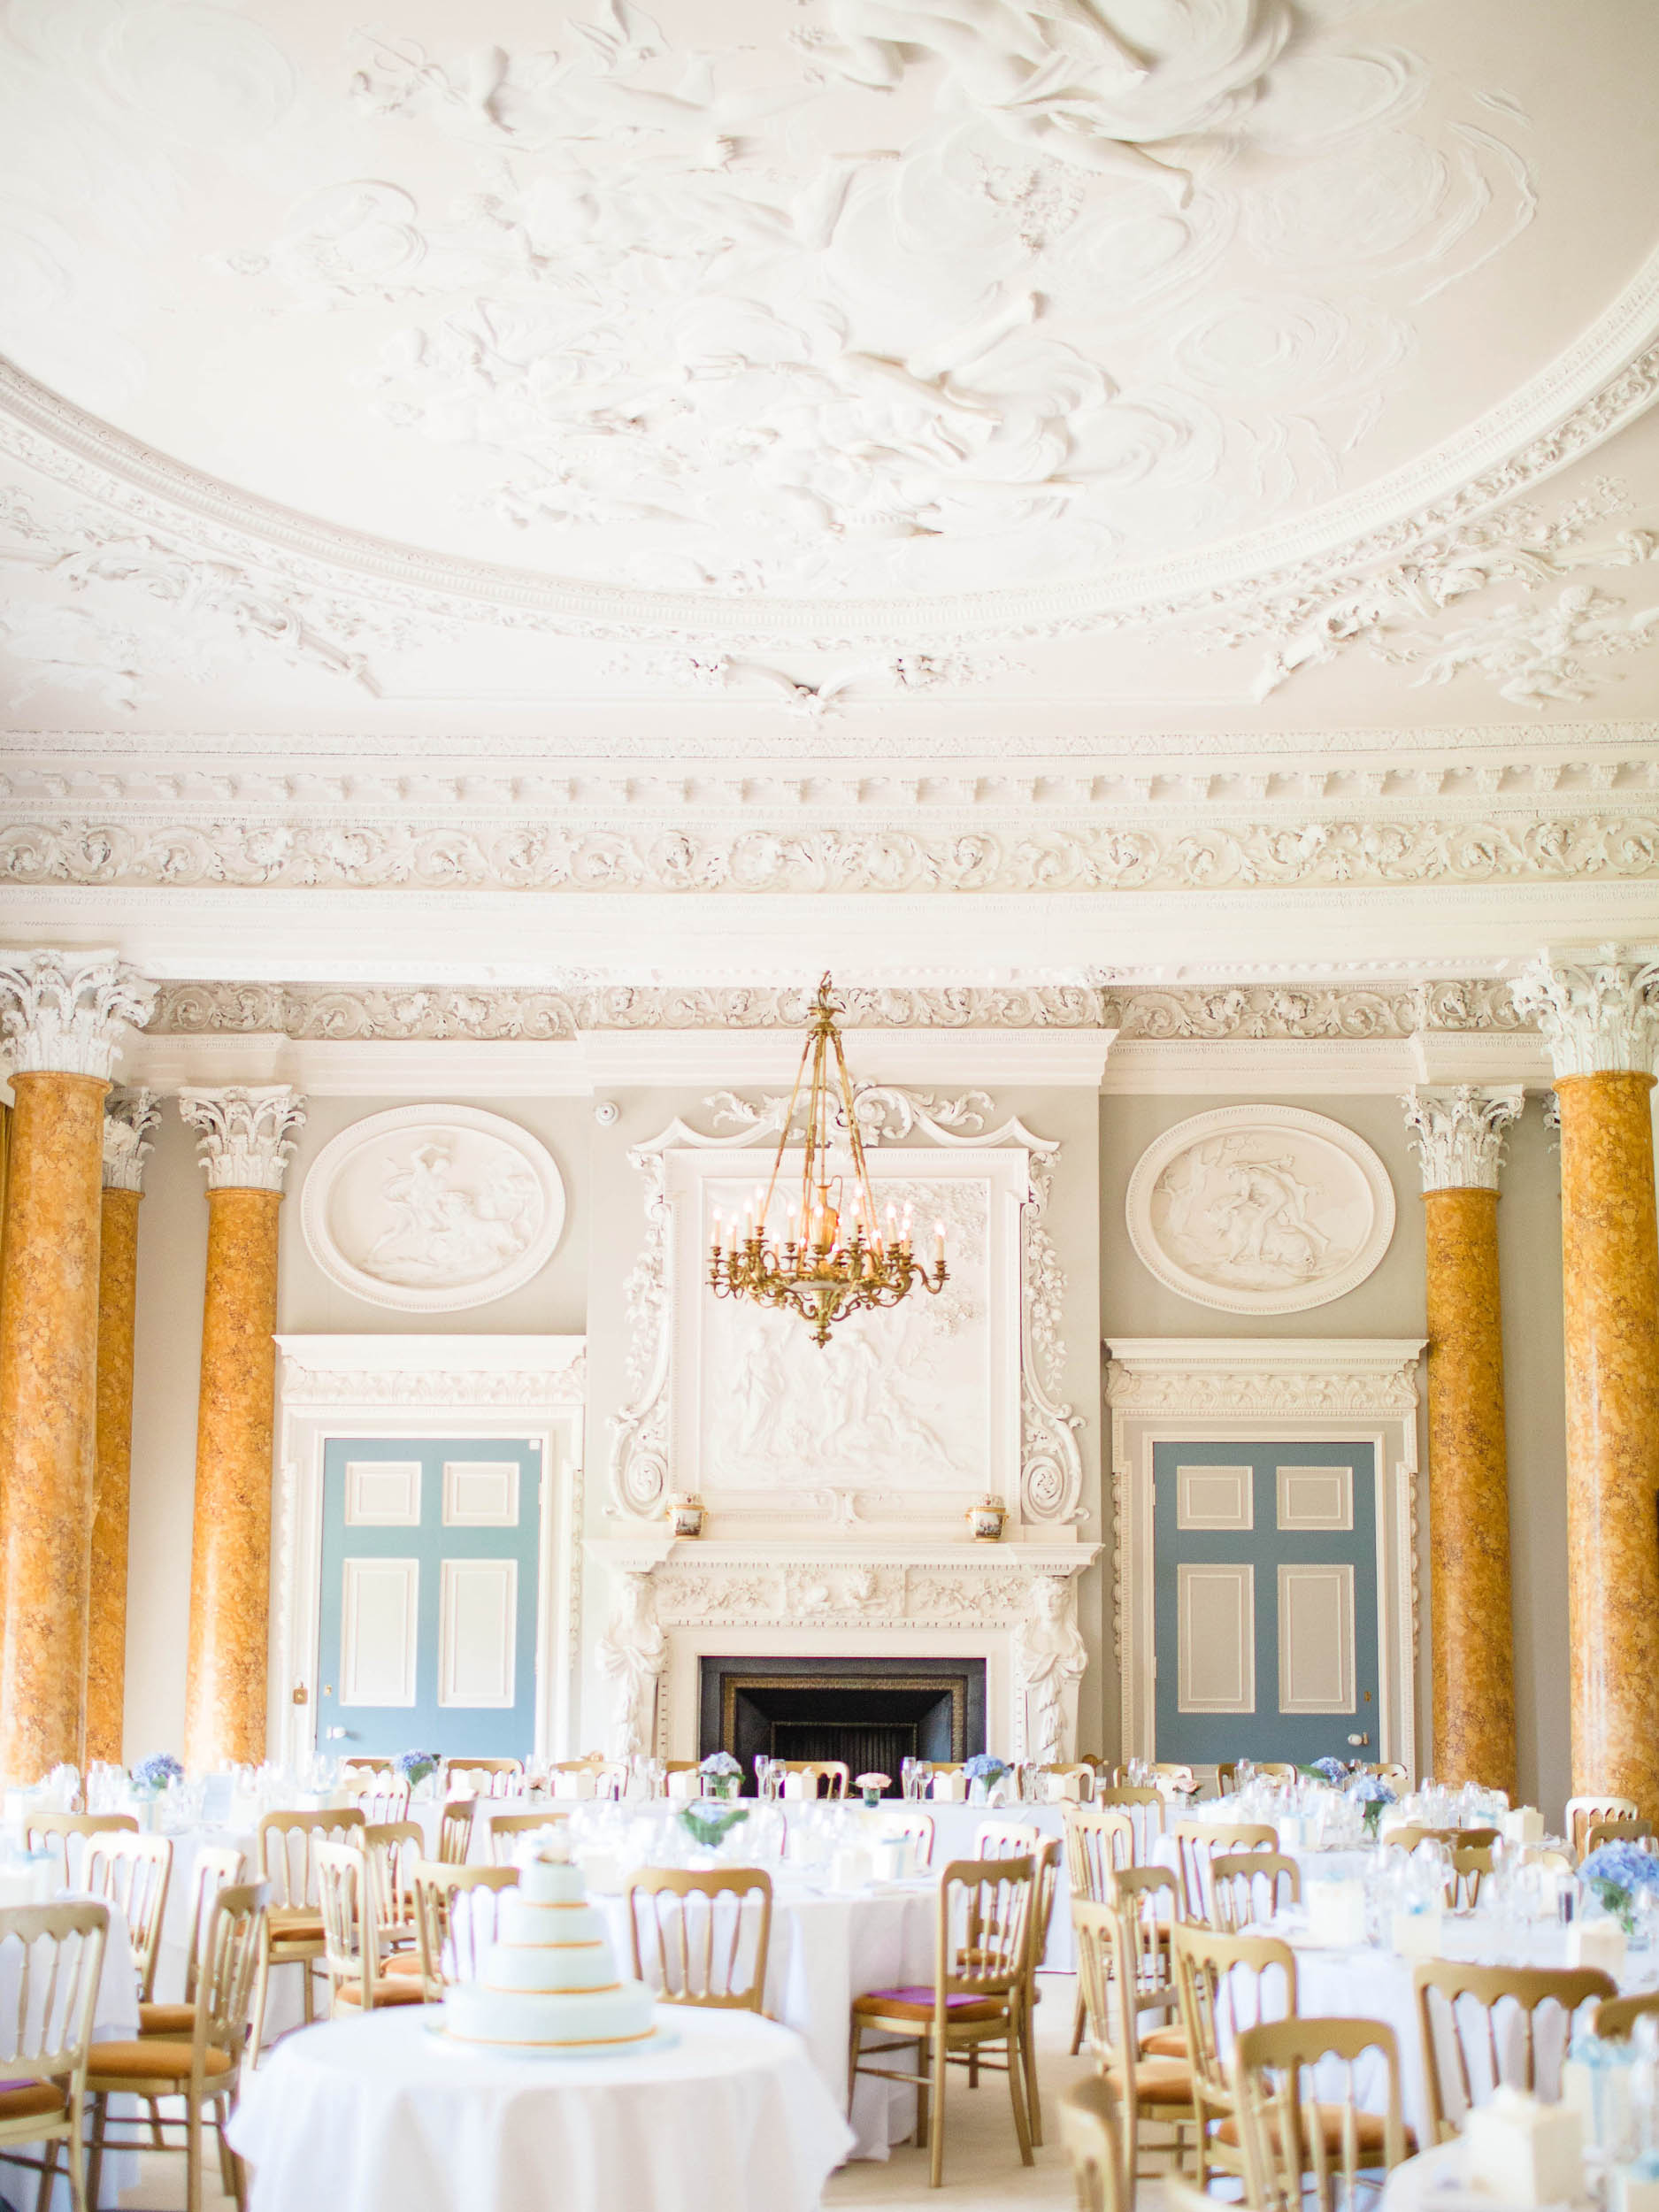 Amy O'Boyle Photography- Destination & UK Fine Art Film Wedding Photographer- Stoneleigh Abbey Wedding-28.jpg